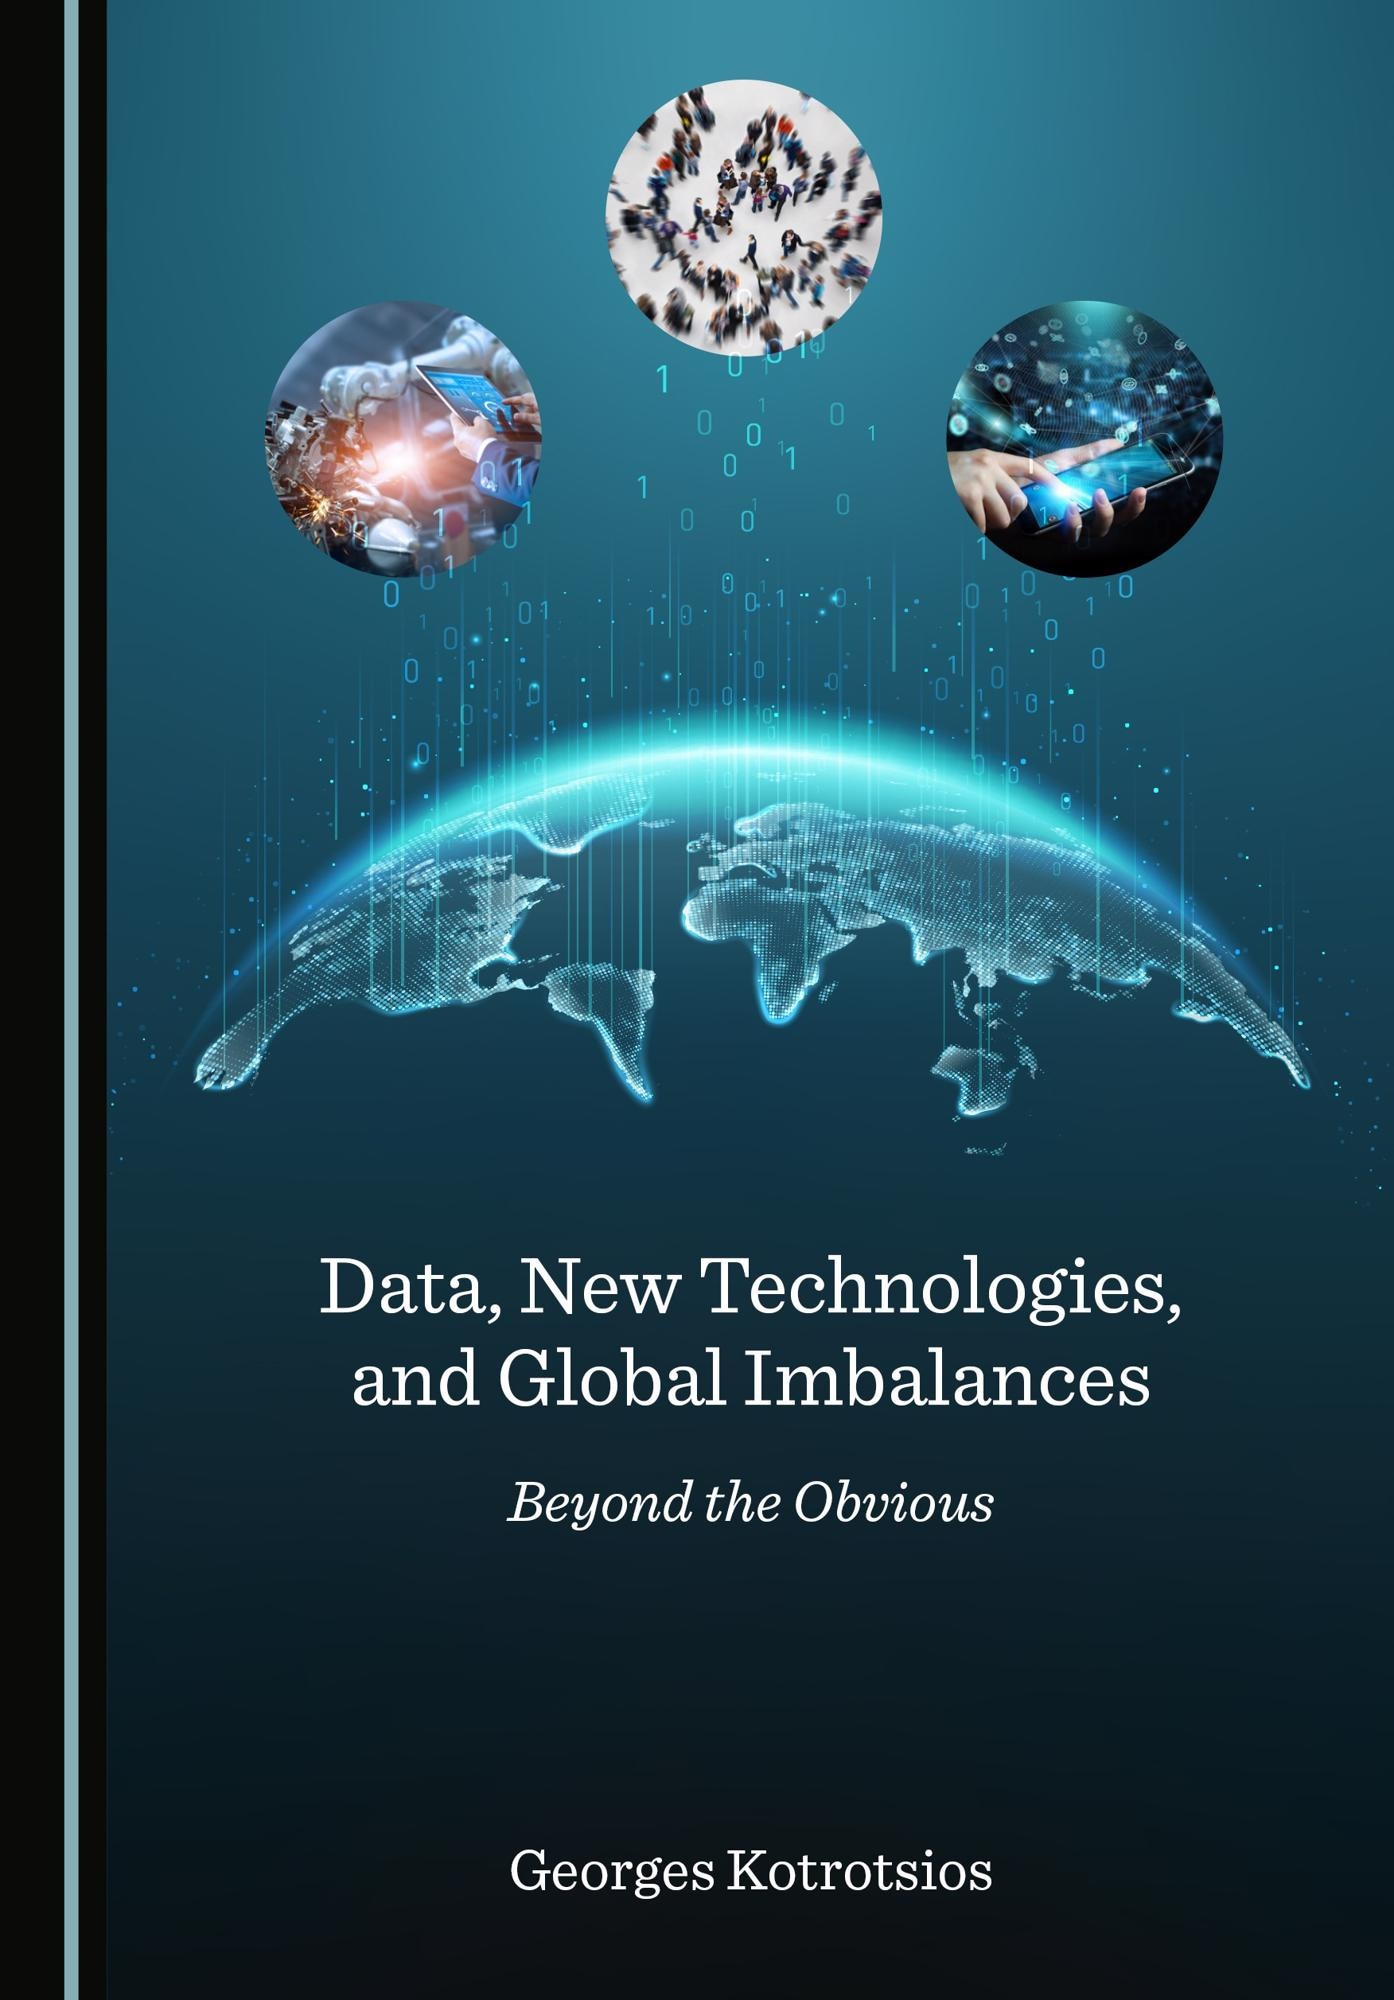 Preventing Global Imbalances with New Technologies.